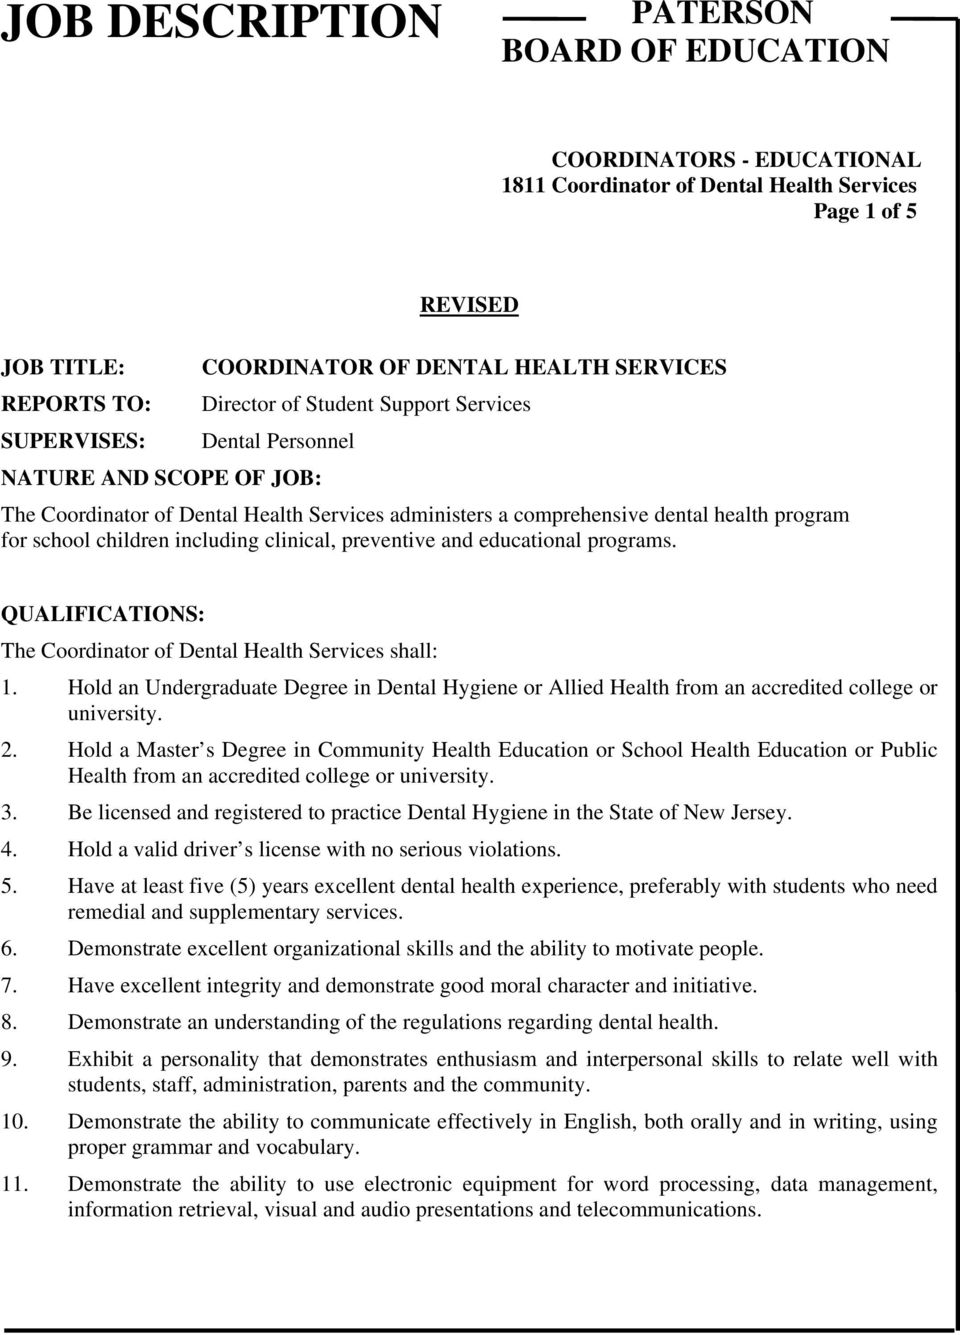 QUALIFICATIONS: The Coordinator of Dental Health Services shall: 1. Hold an Undergraduate Degree in Dental Hygiene or Allied Health from an accredited college or university. 2.